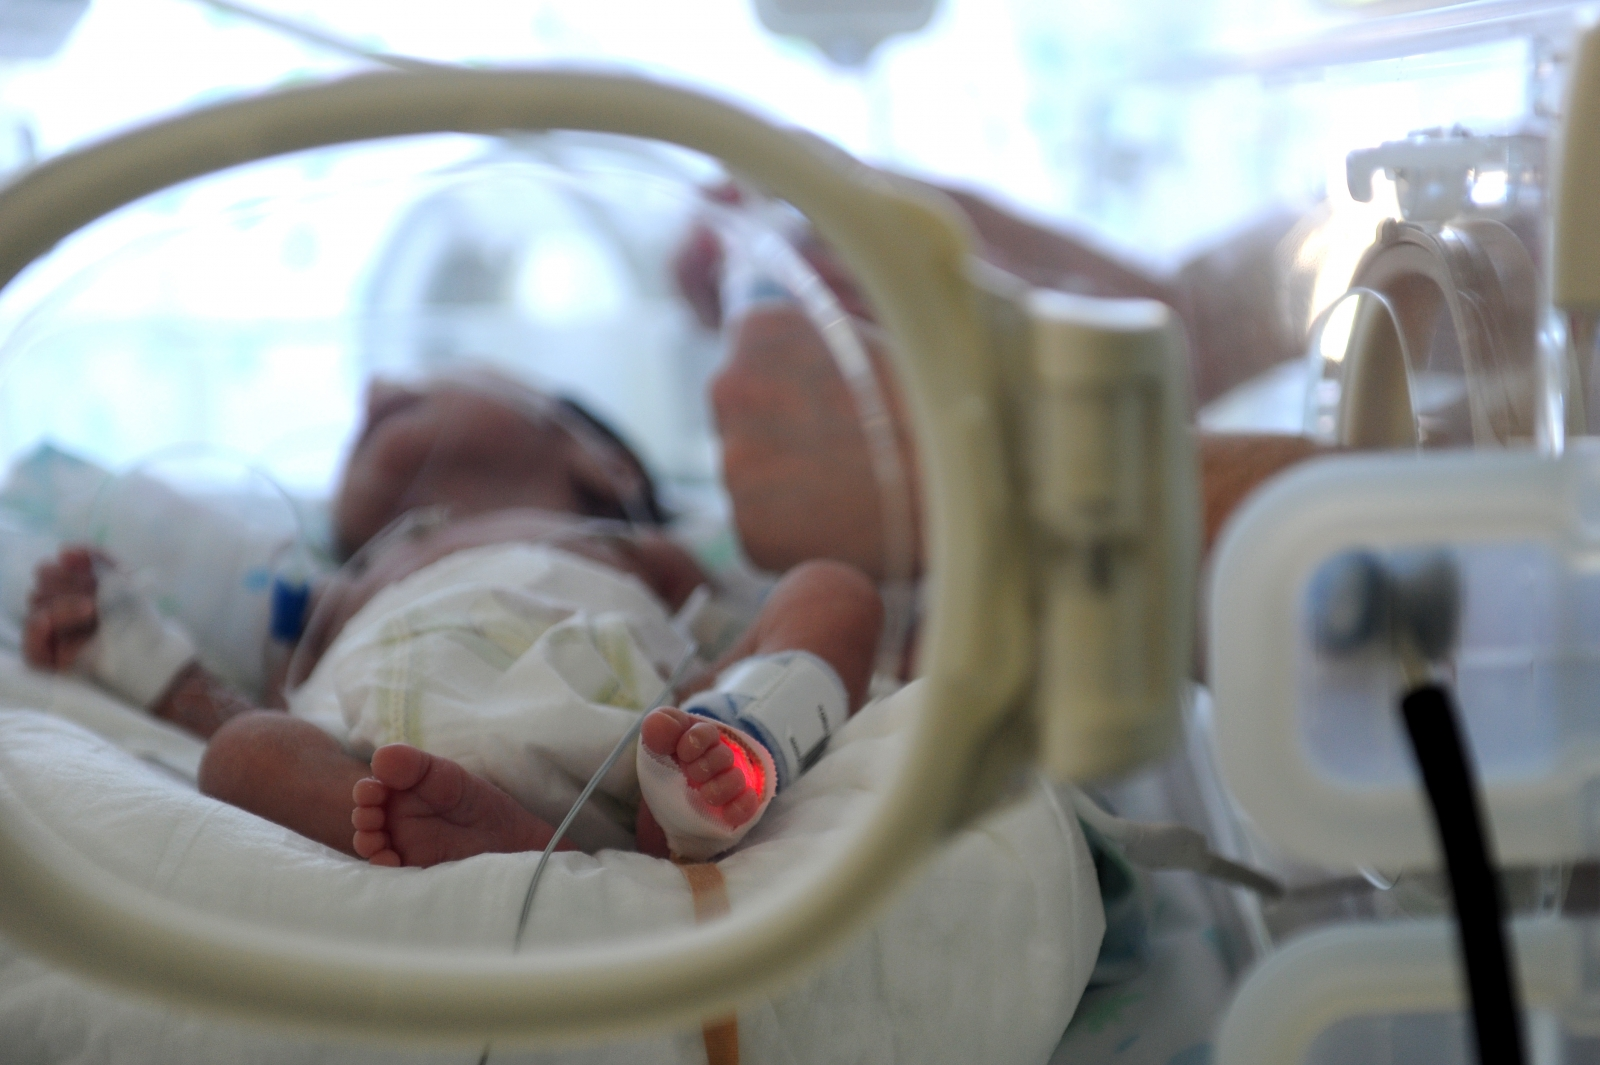 Autopsies To Be Performed To Find Cause Of Newborns' Mysterious Deaths